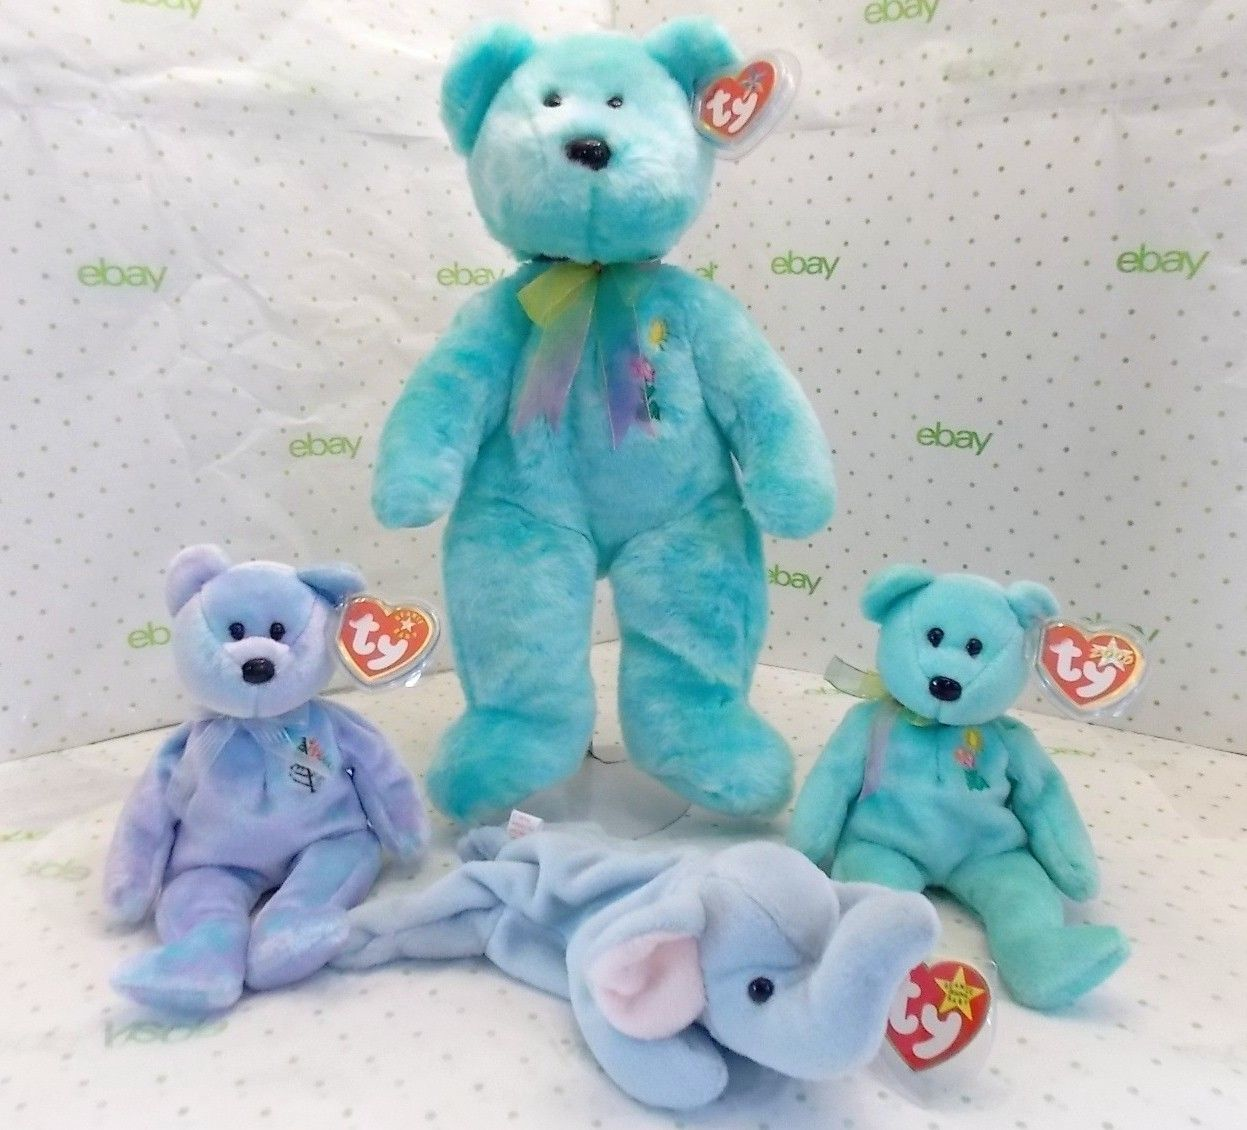 The 20 Expensive Collectible Beanie Babies Will Make You Rich - Most  Valuable Beanie Babies 7dbfb081a1e